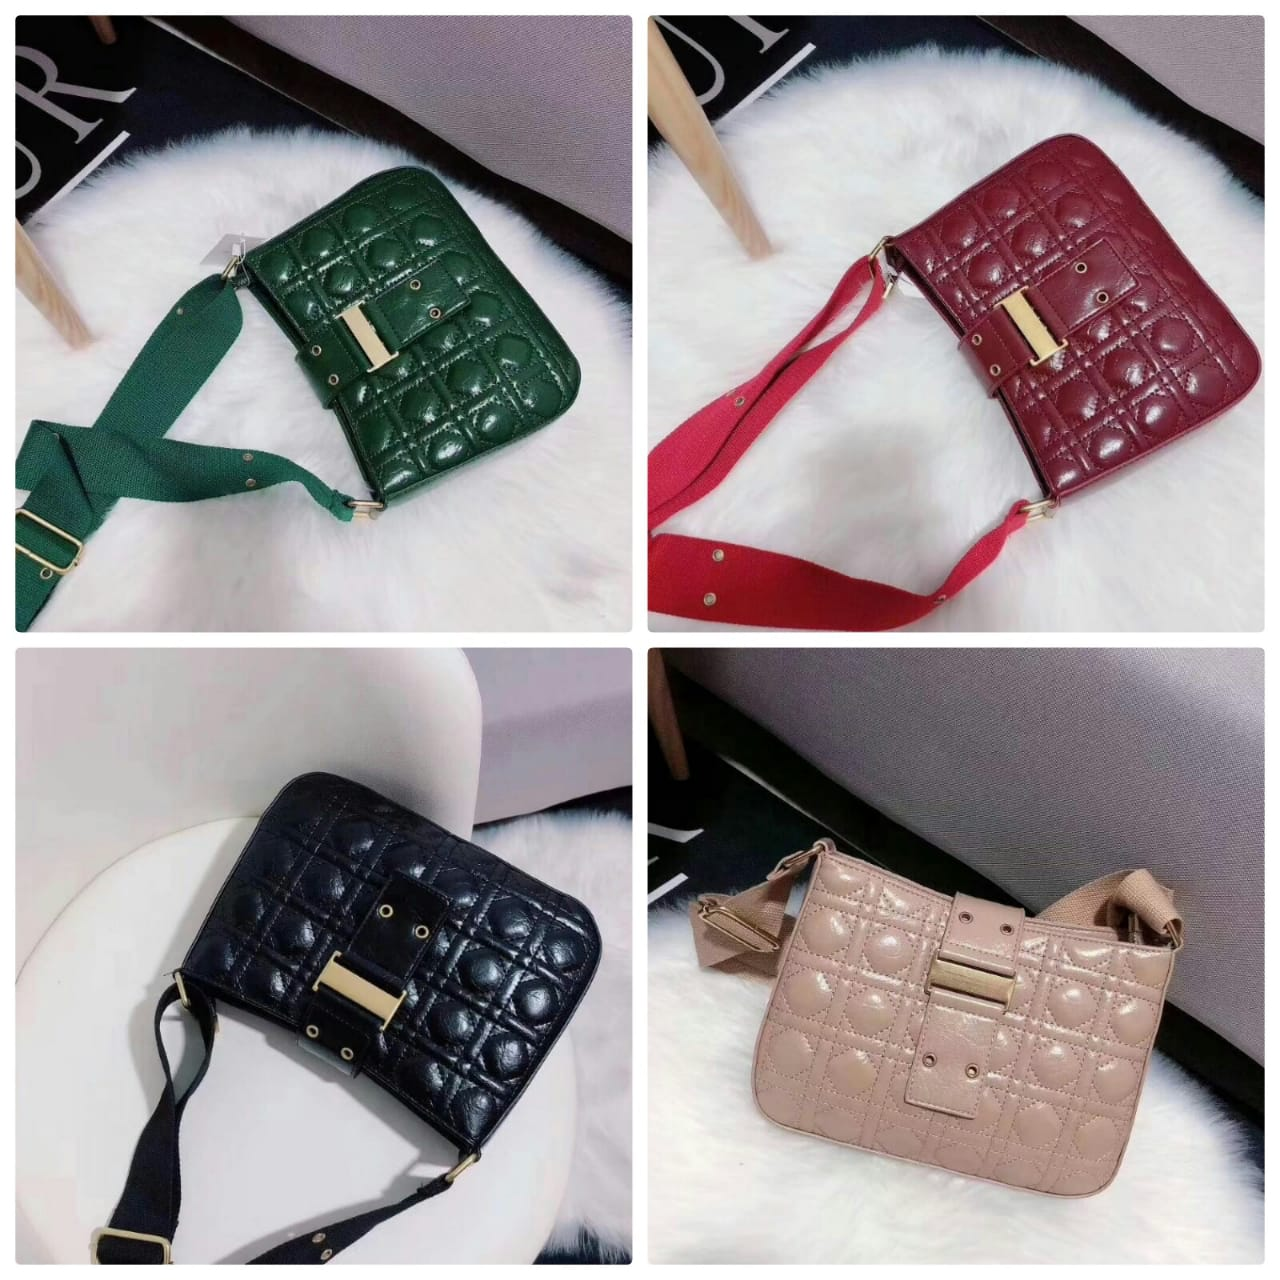 Tas Fashion import Murah 2020 8228AJ Tas Fashion, Tas Fashion Import, Tas Fashion Batam